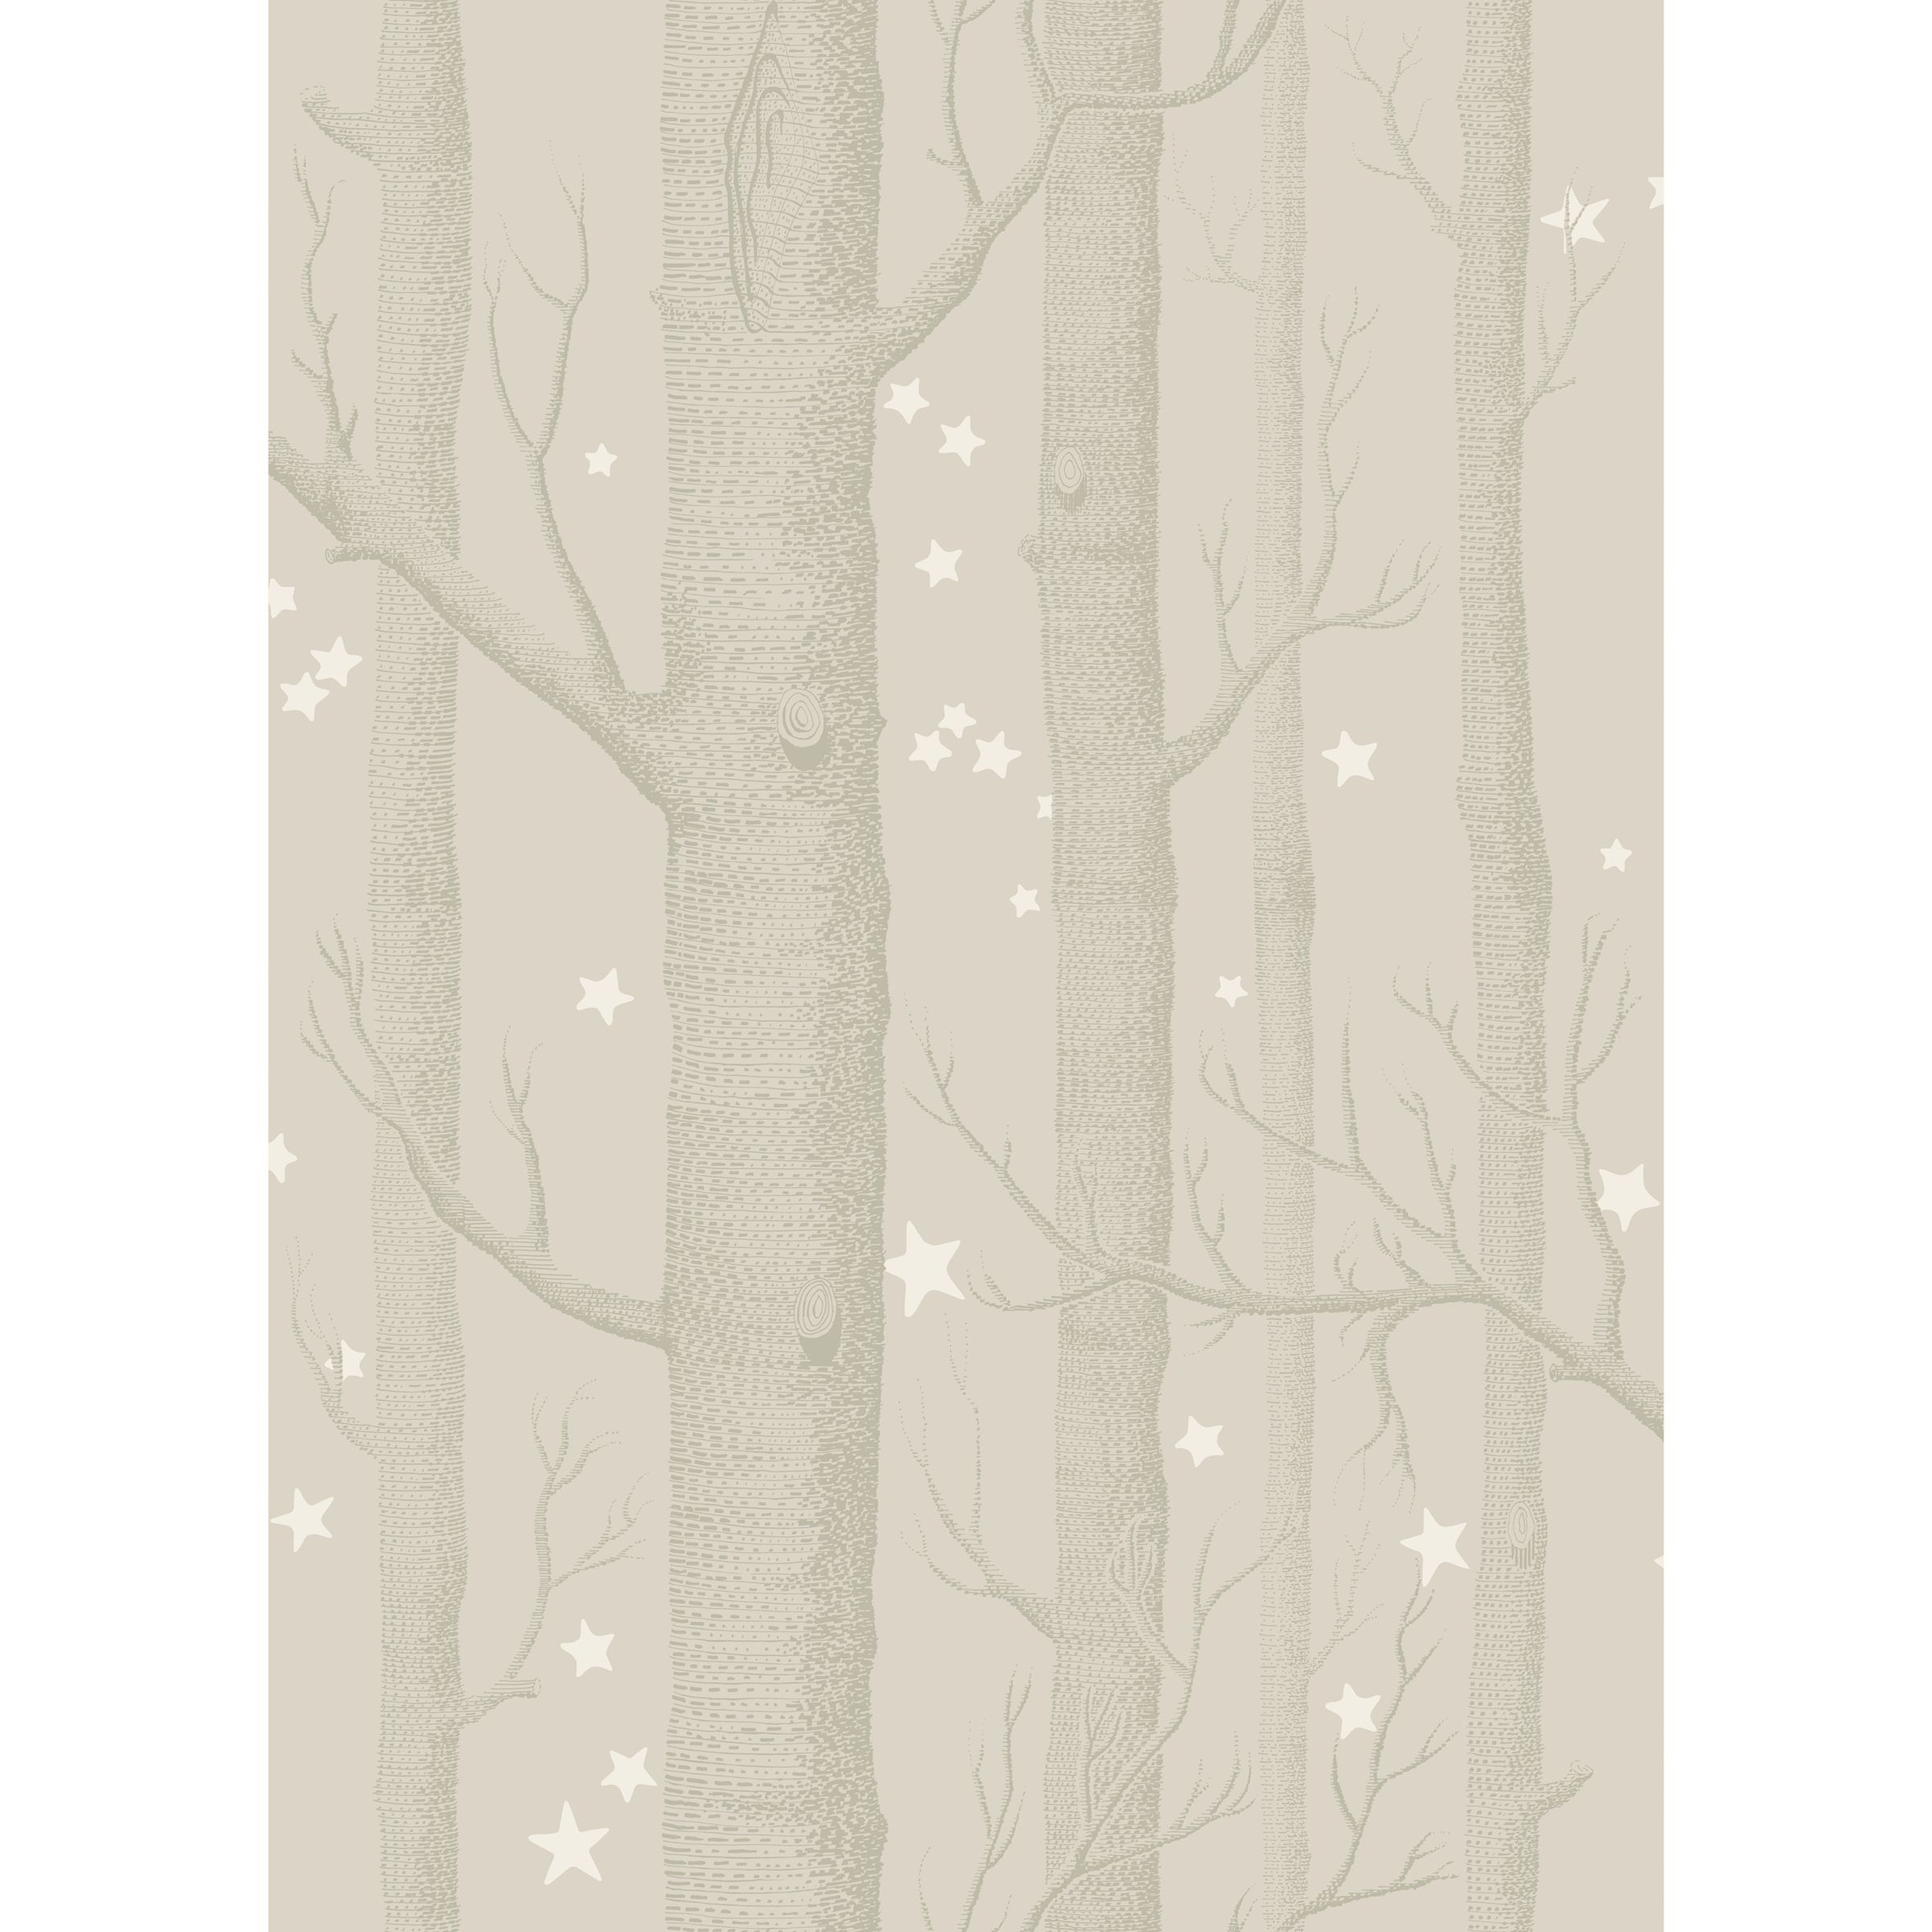 Cole & Son Woods & Stars Wallpaper in 2020 Wood stars